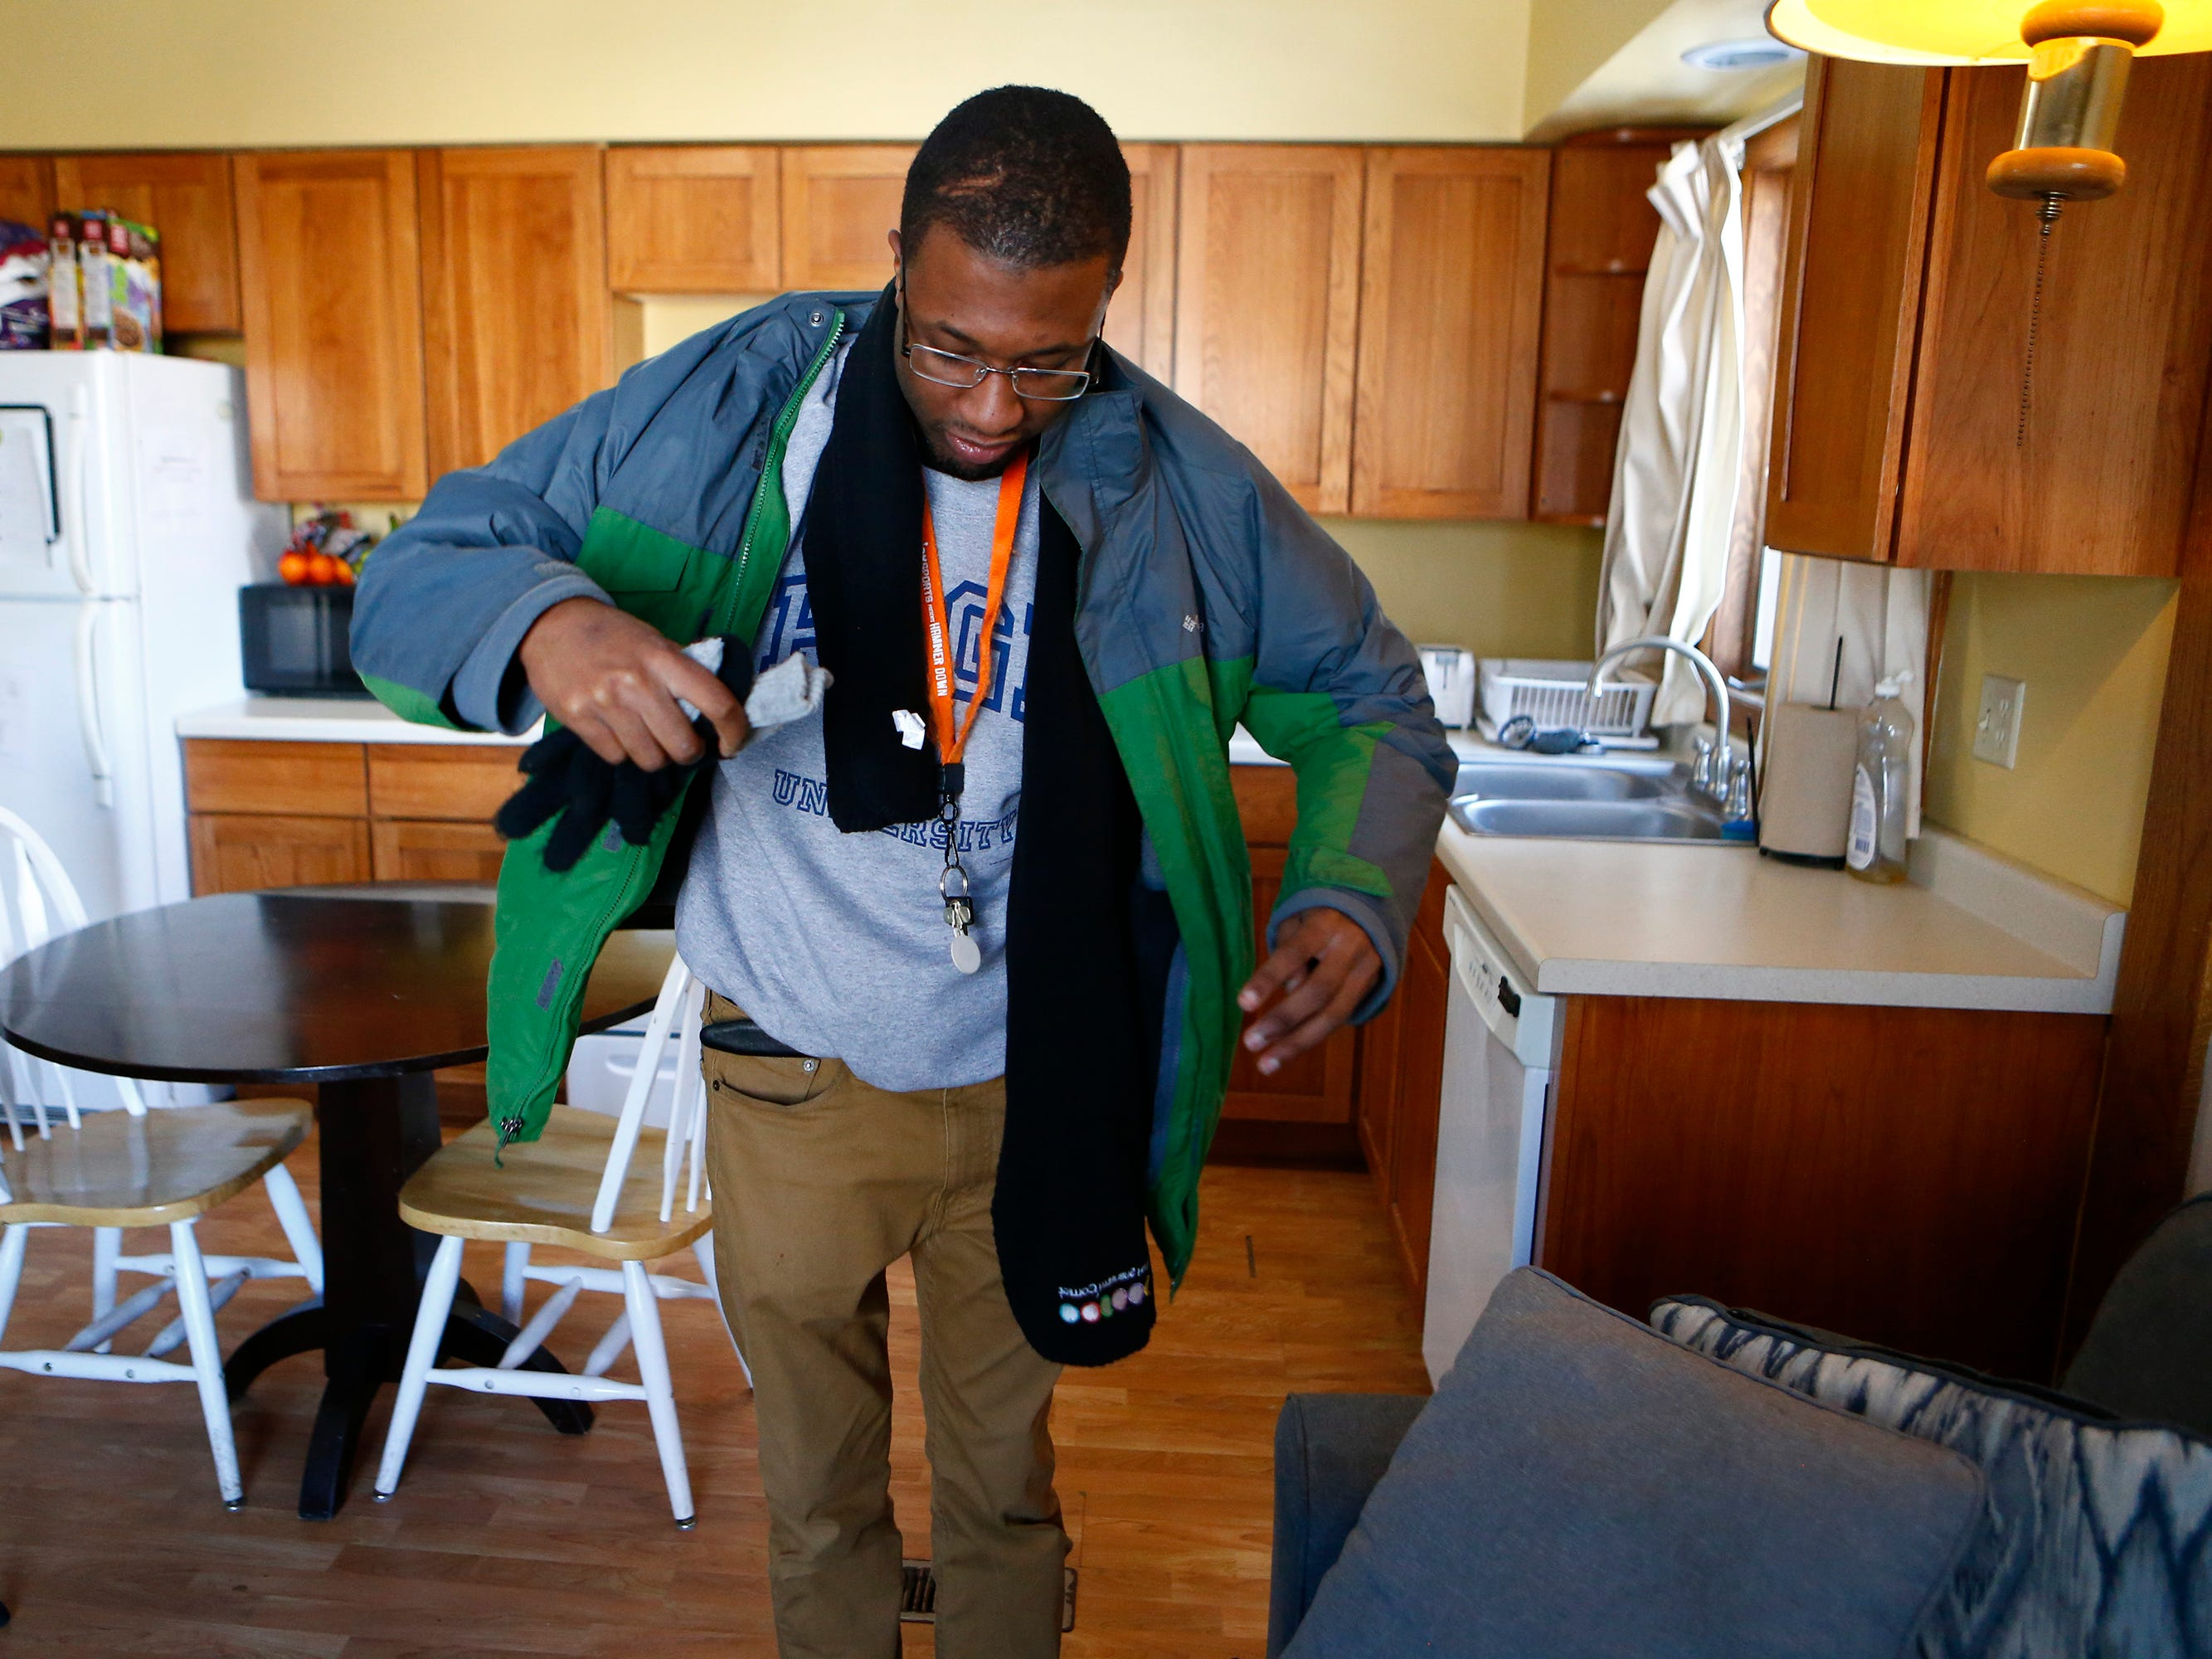 Ben Page readies to leave his apartment to go work at his internship at Sheperds College, a school for students with intellectual disabilities, in Union Grove.